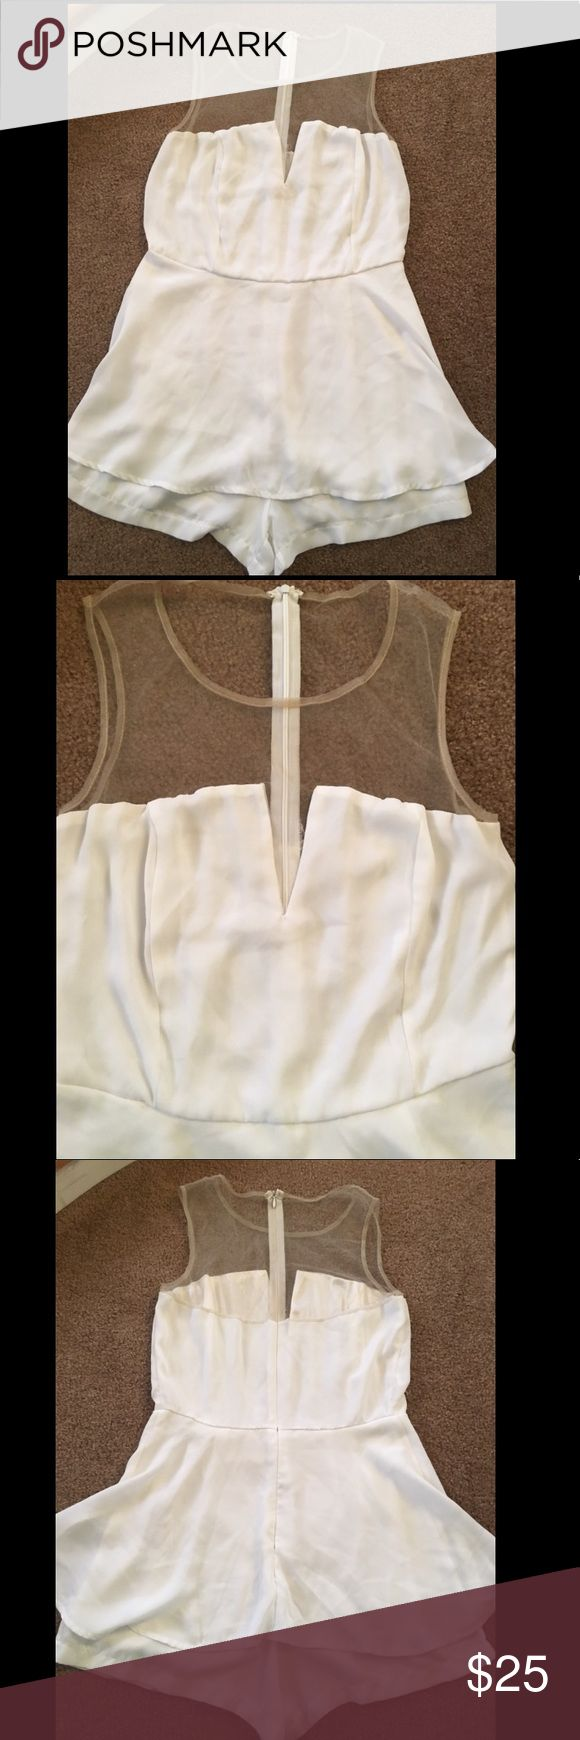 Sexy White Party Club Dress Size large super white party girl cute dress. Has mesh see through area in the front. Pictures are front and back. Light white cream color. Feel free to ask any questions! (:  #wedding #prom #formal #club #clubdress #summer #sundress #dress #floral #flowers #sun #hot #summerdress #mini #rue21 #21 #young #ootd #outfitoftheday #sexy #hot #kylie #kyliejenner #taylorswift #beach #beachdress #formal #simple #promdress  #modest #longdress #long #forever21 #taylorswift…